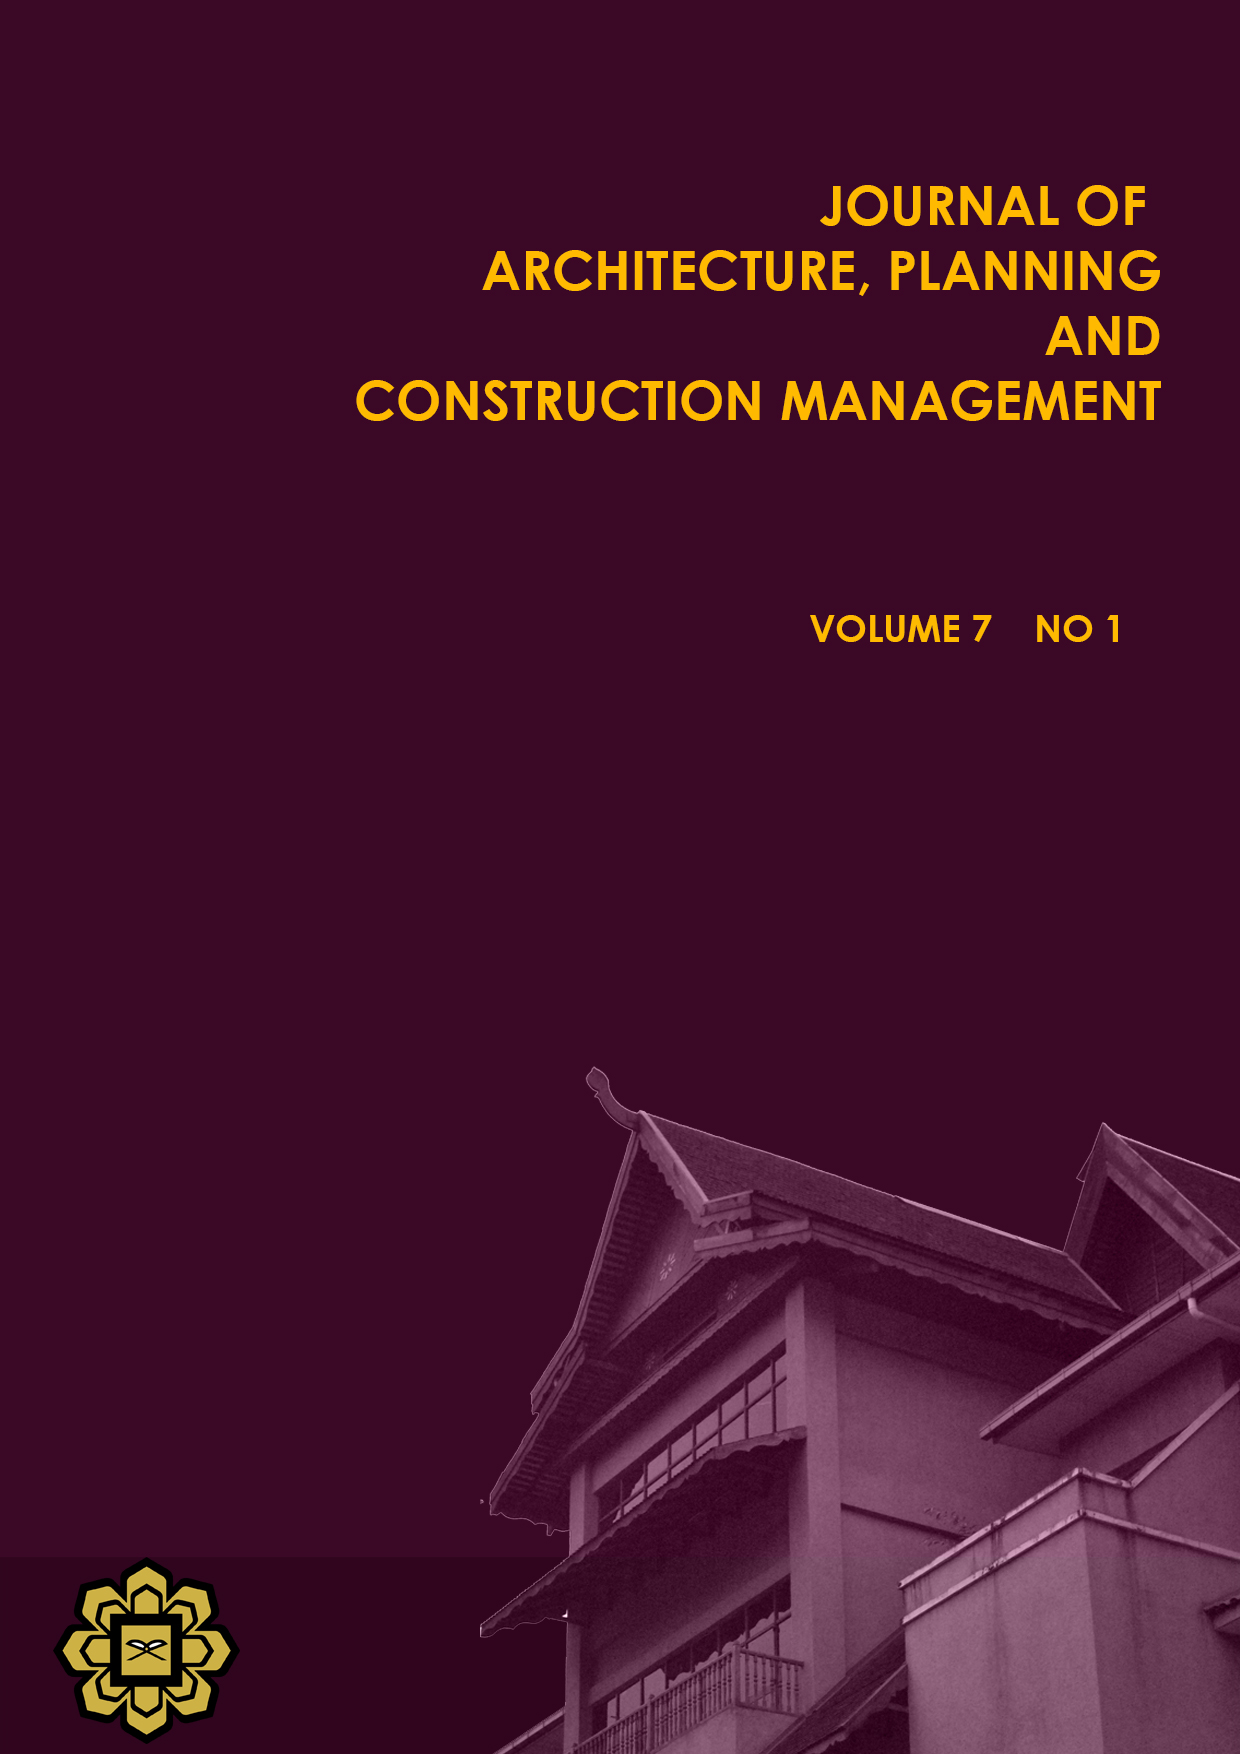 View Vol. 7 No. 1 (2017): Journal of Architecture, Planning and Construction Management